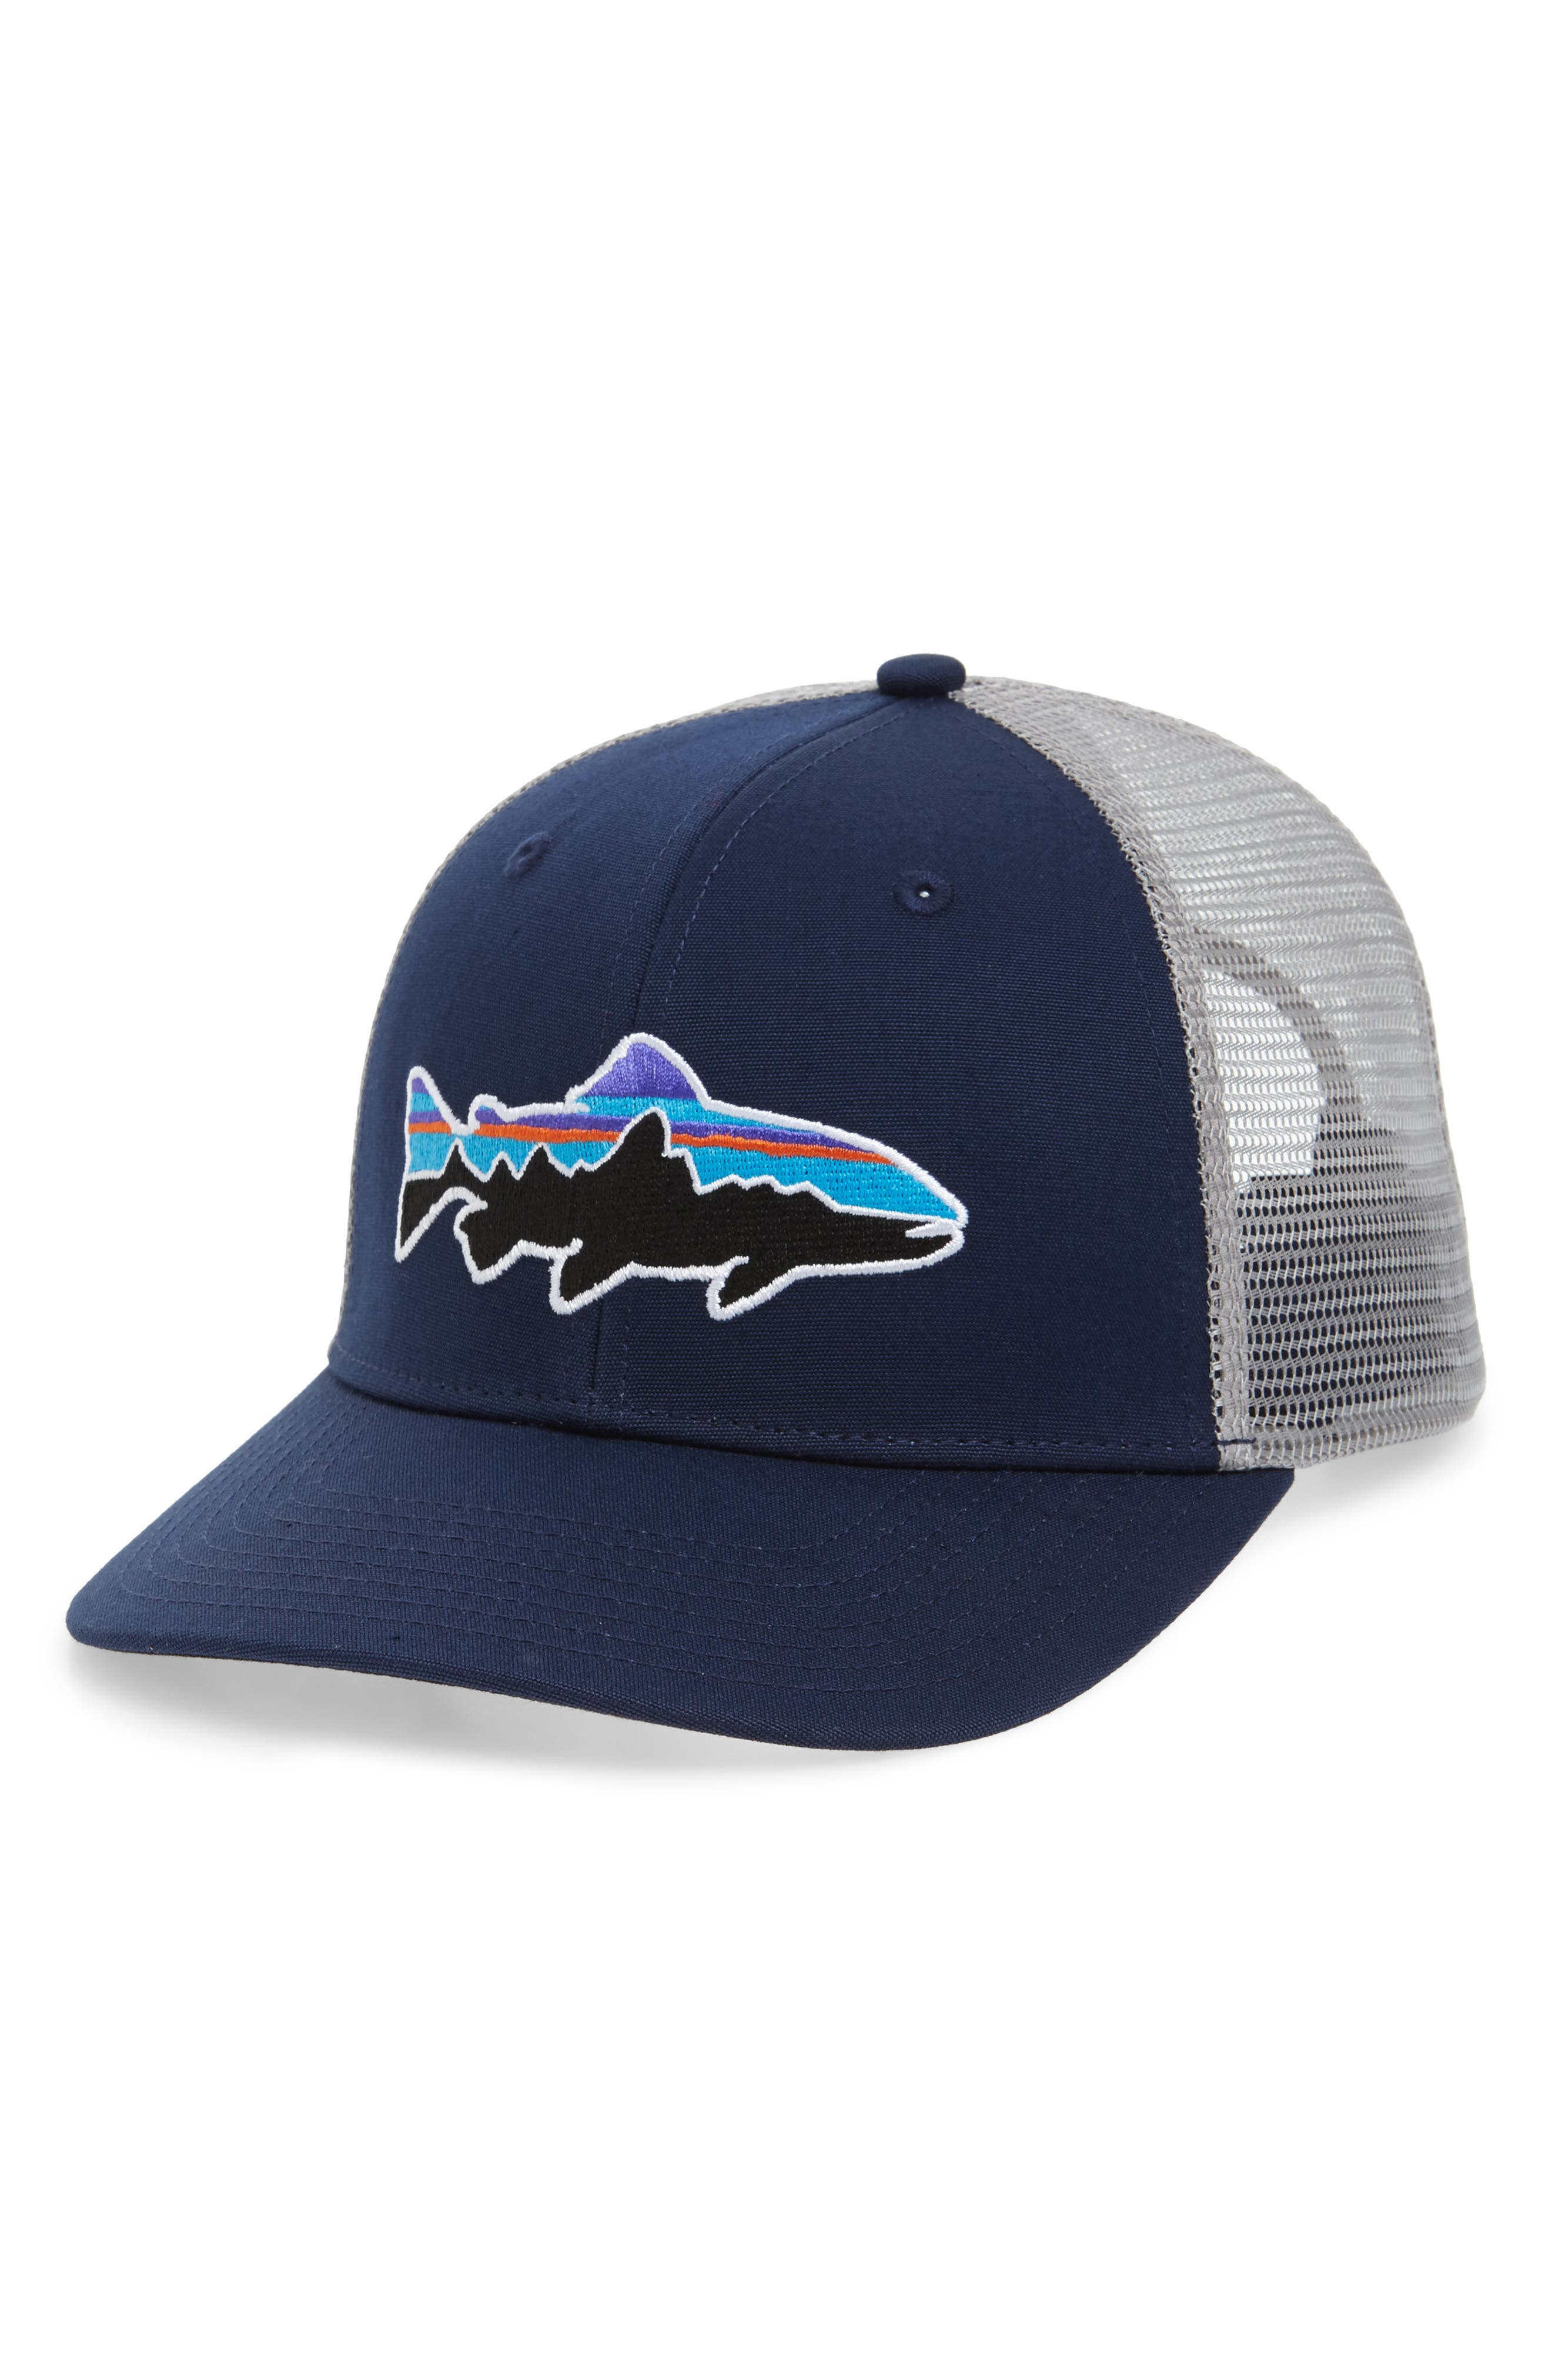 Alternate Image 1 Selected - Patagonia 'Fitz Roy - Trout' Trucker Hat